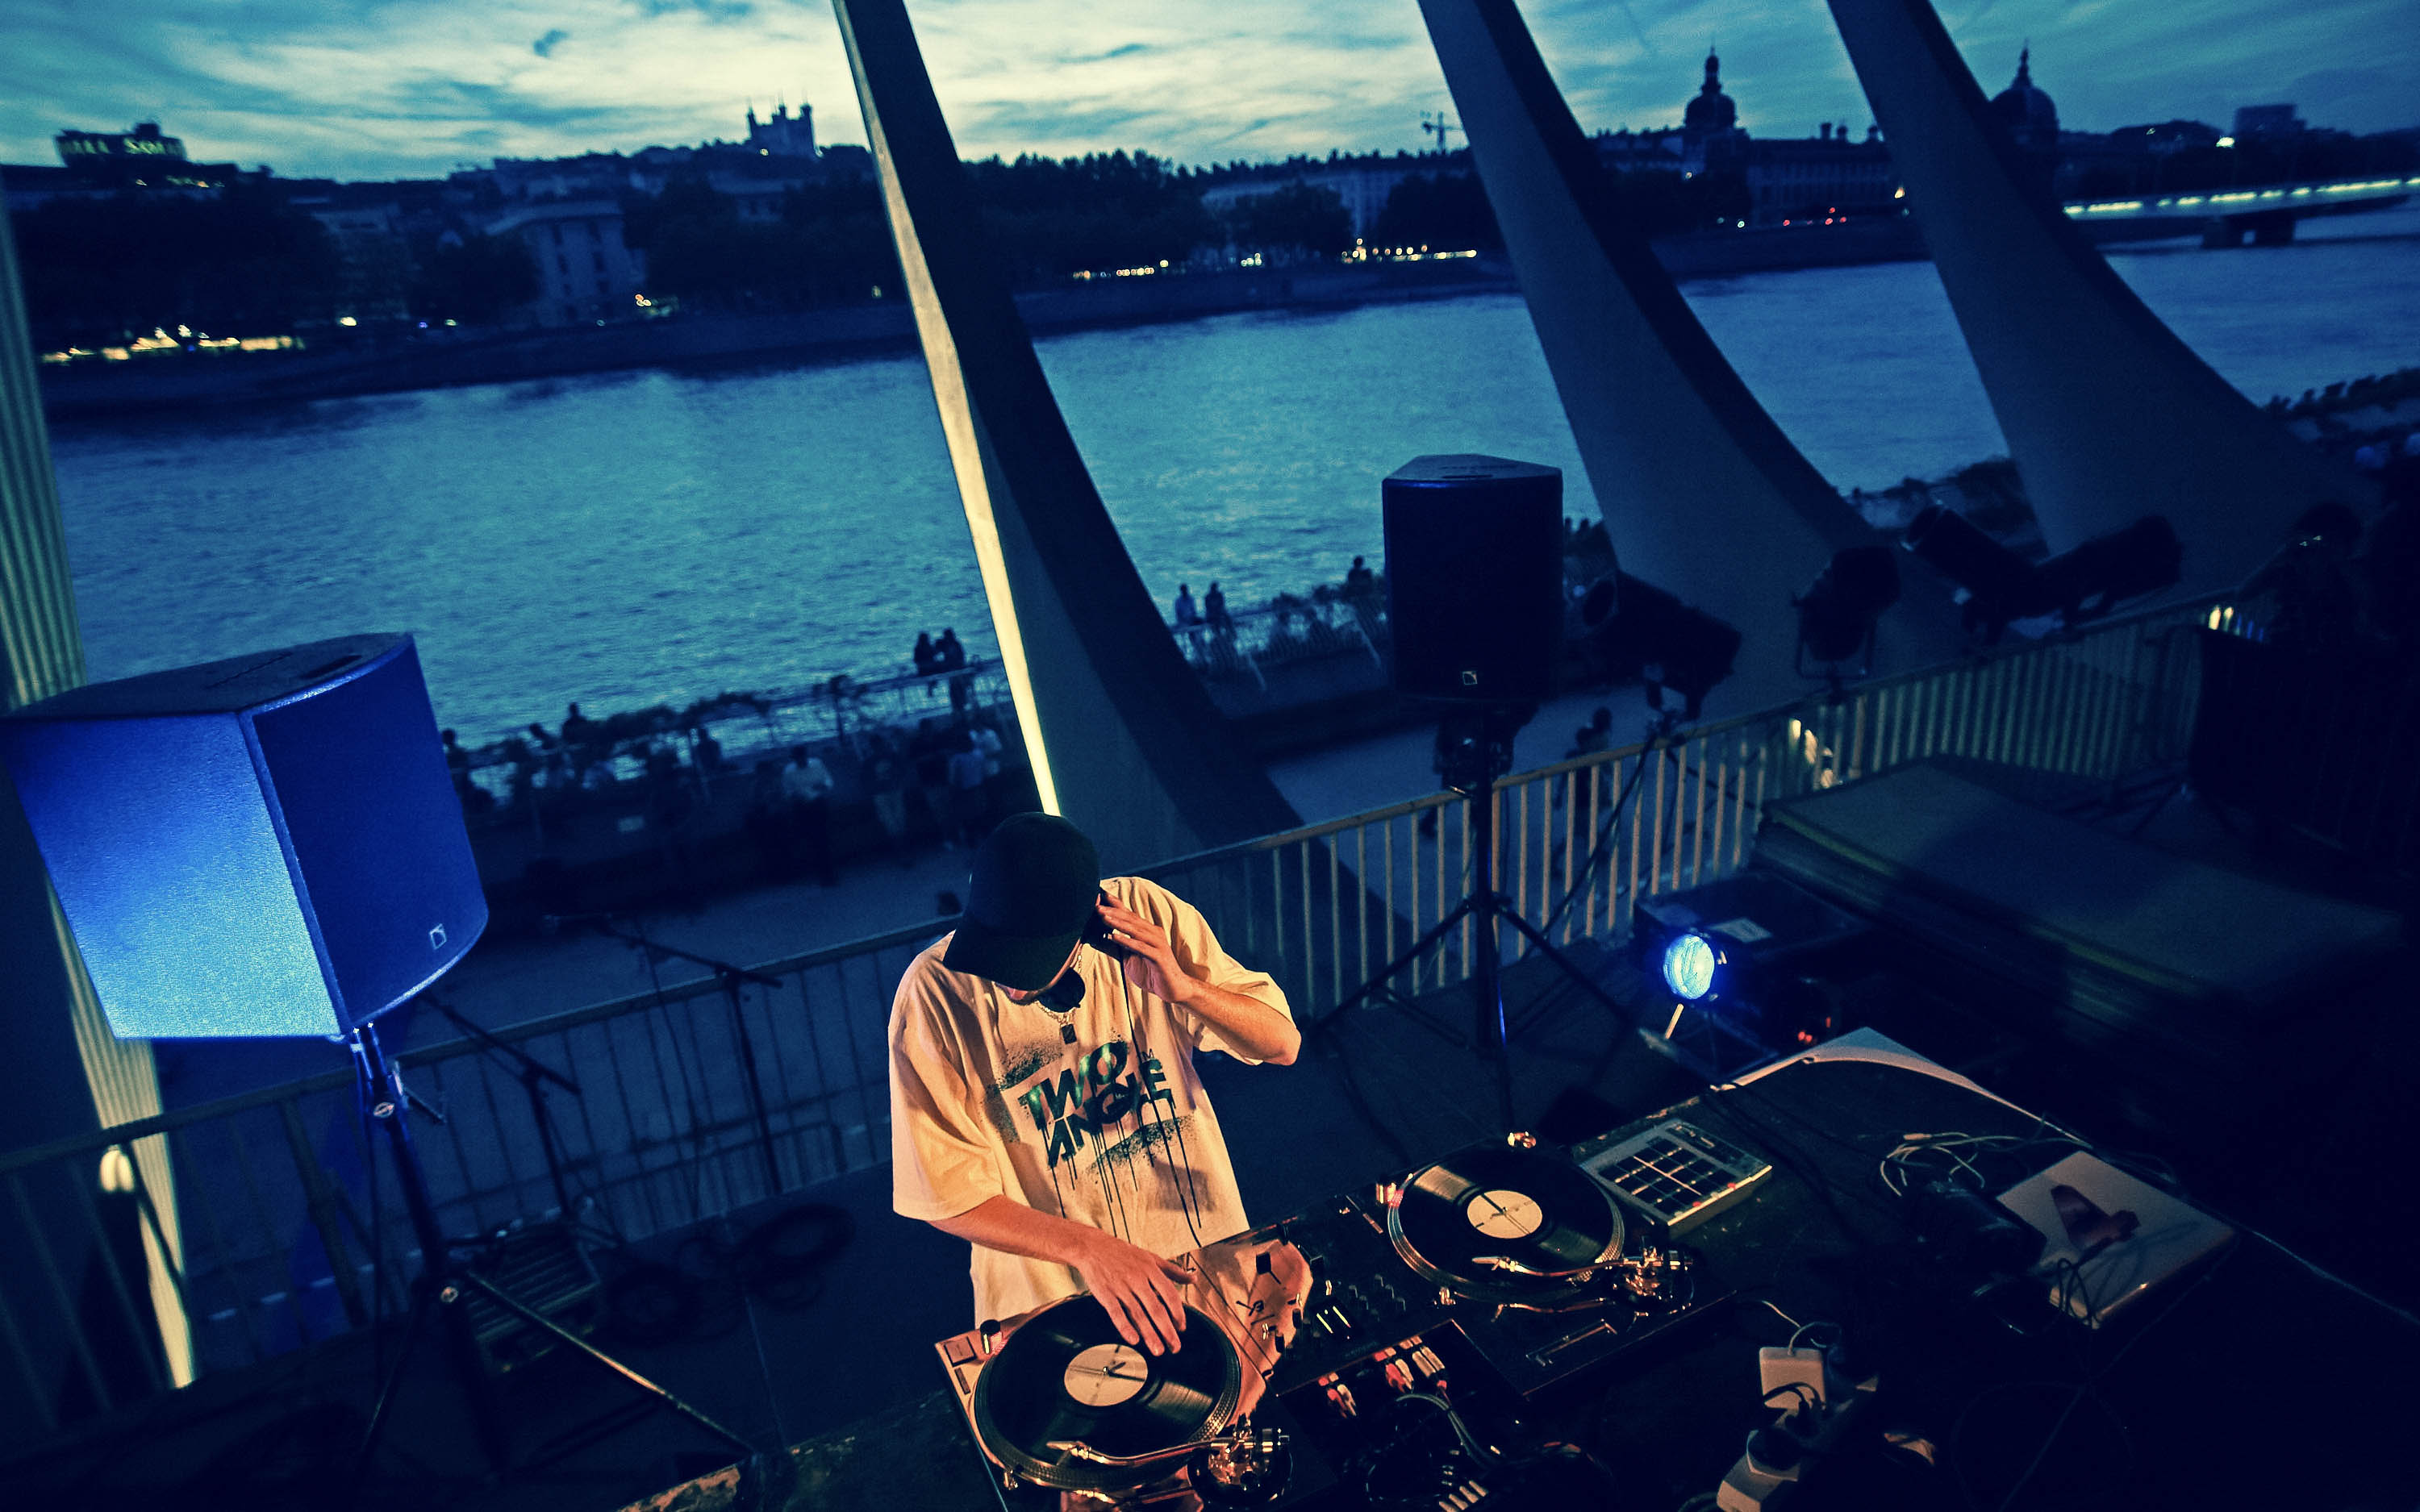 LHH-Dj-Fly-Lyon-Nuits-Sonores-2